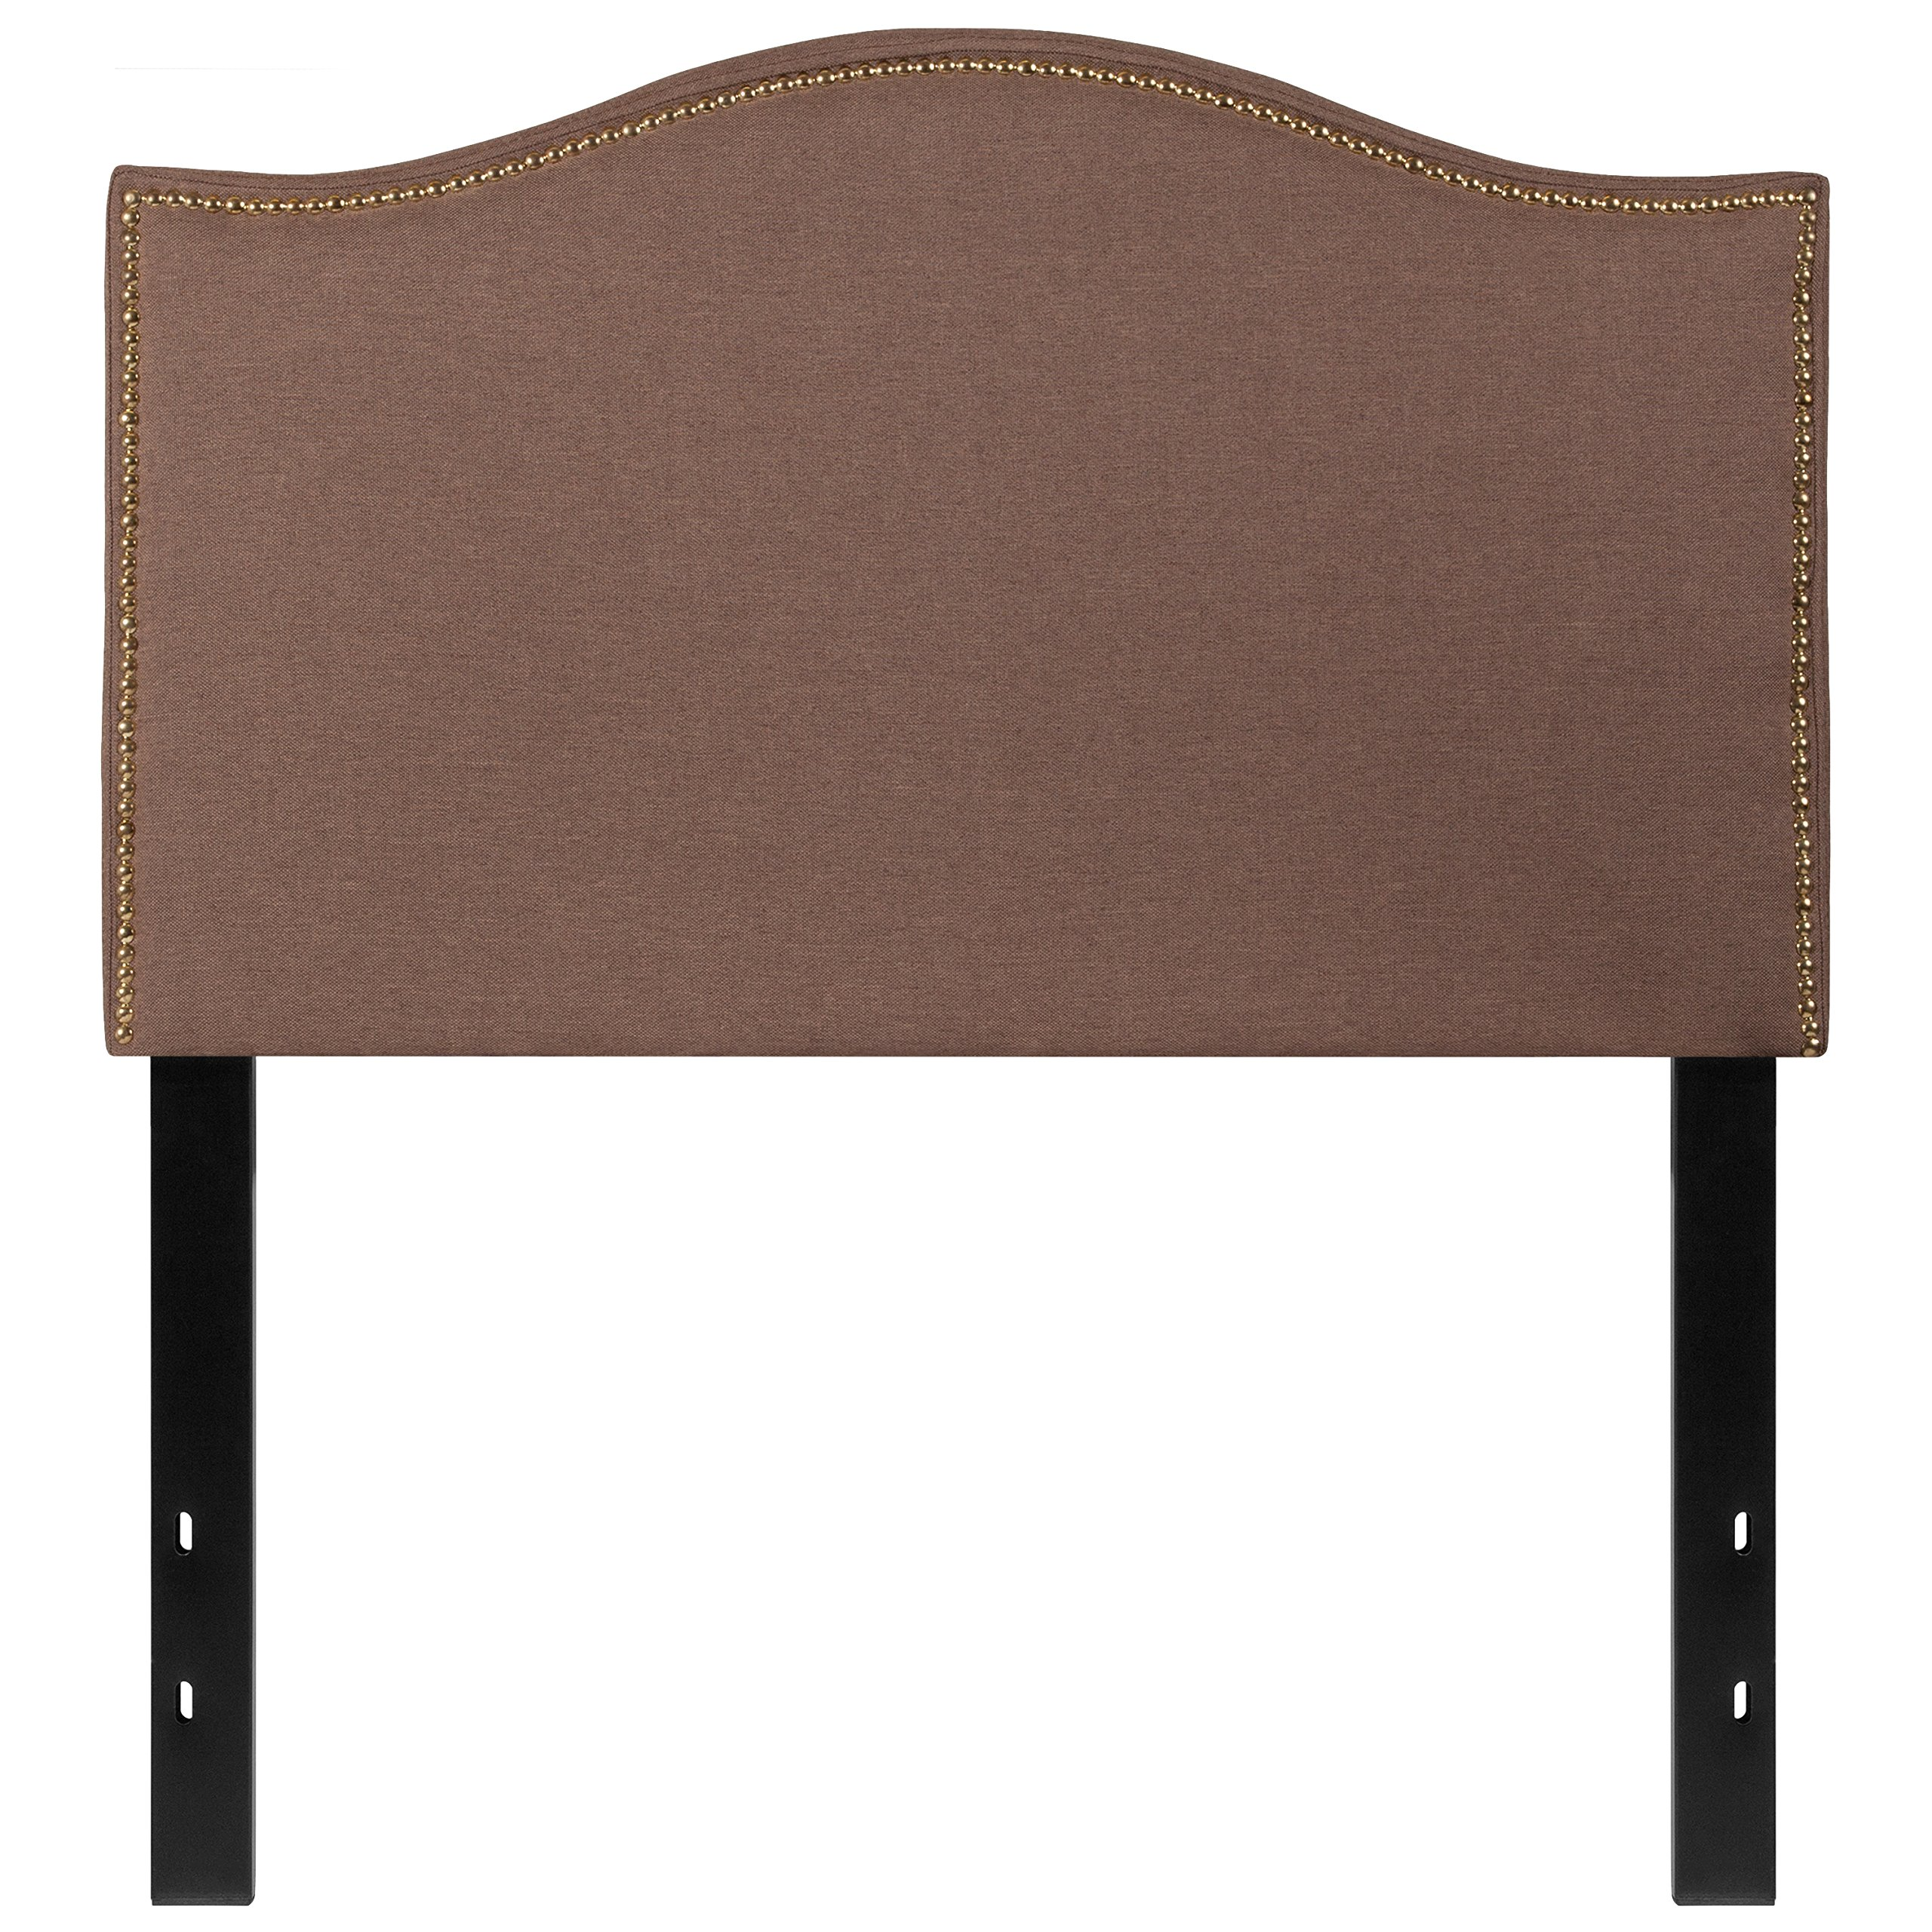 Flash Furniture Lexington Upholstered Twin Size Headboard with Accent Nail Trim in Camel Fabric